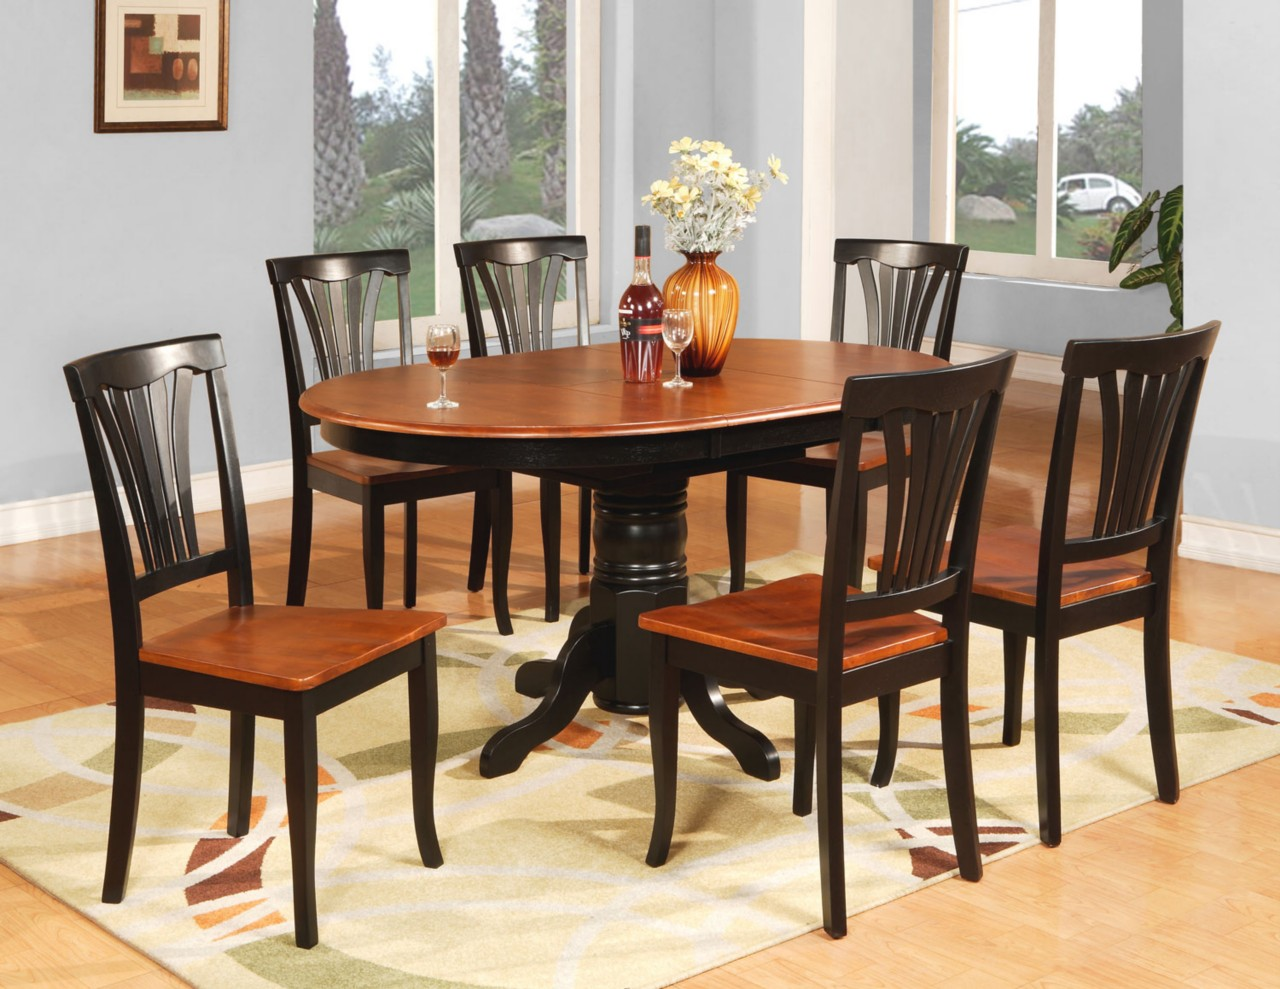 7 pc oval dinette kitchen dining room table 6 chairs ebay for Dining room table and bench set